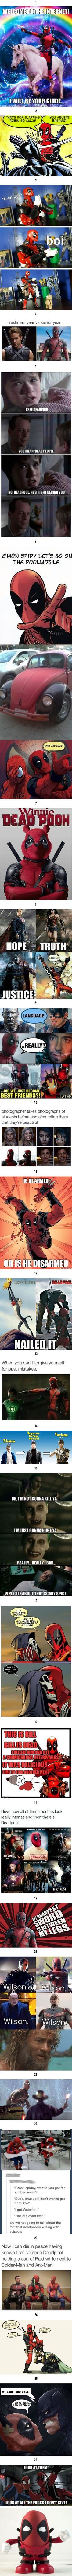 26 DEADPOOL Memes That Will Leave You Bloody and Breathless